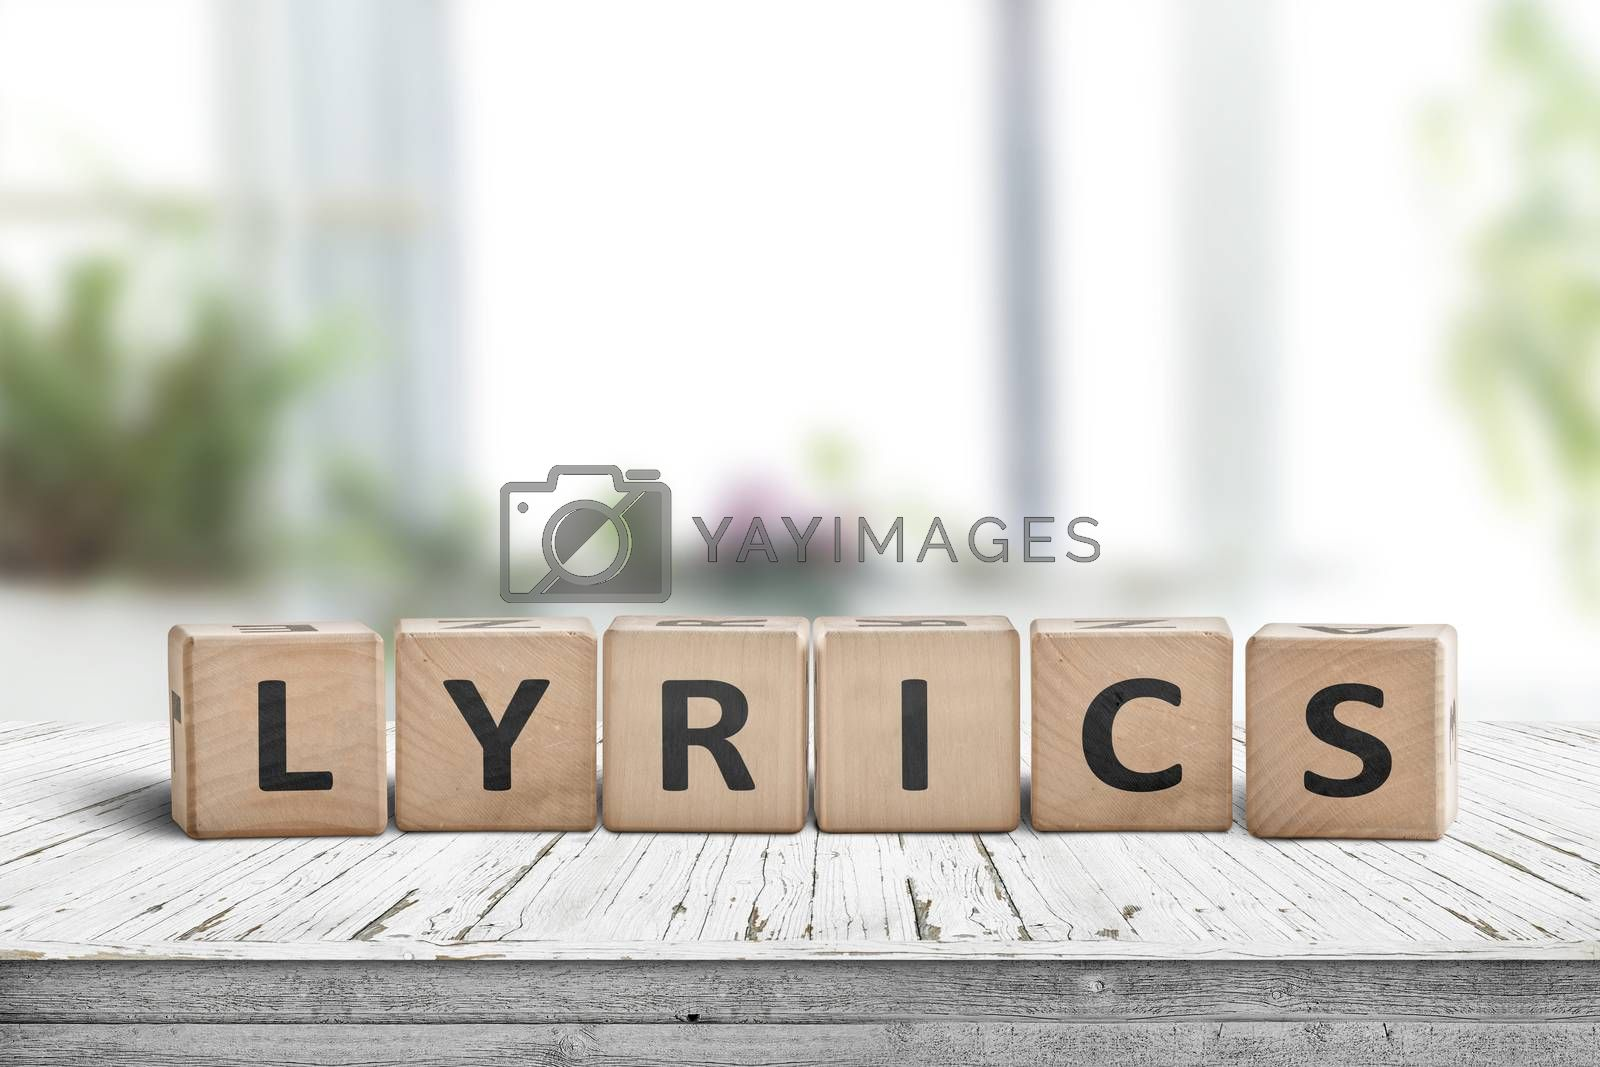 Lyrics sign on a table in a bright room with green plants in the background